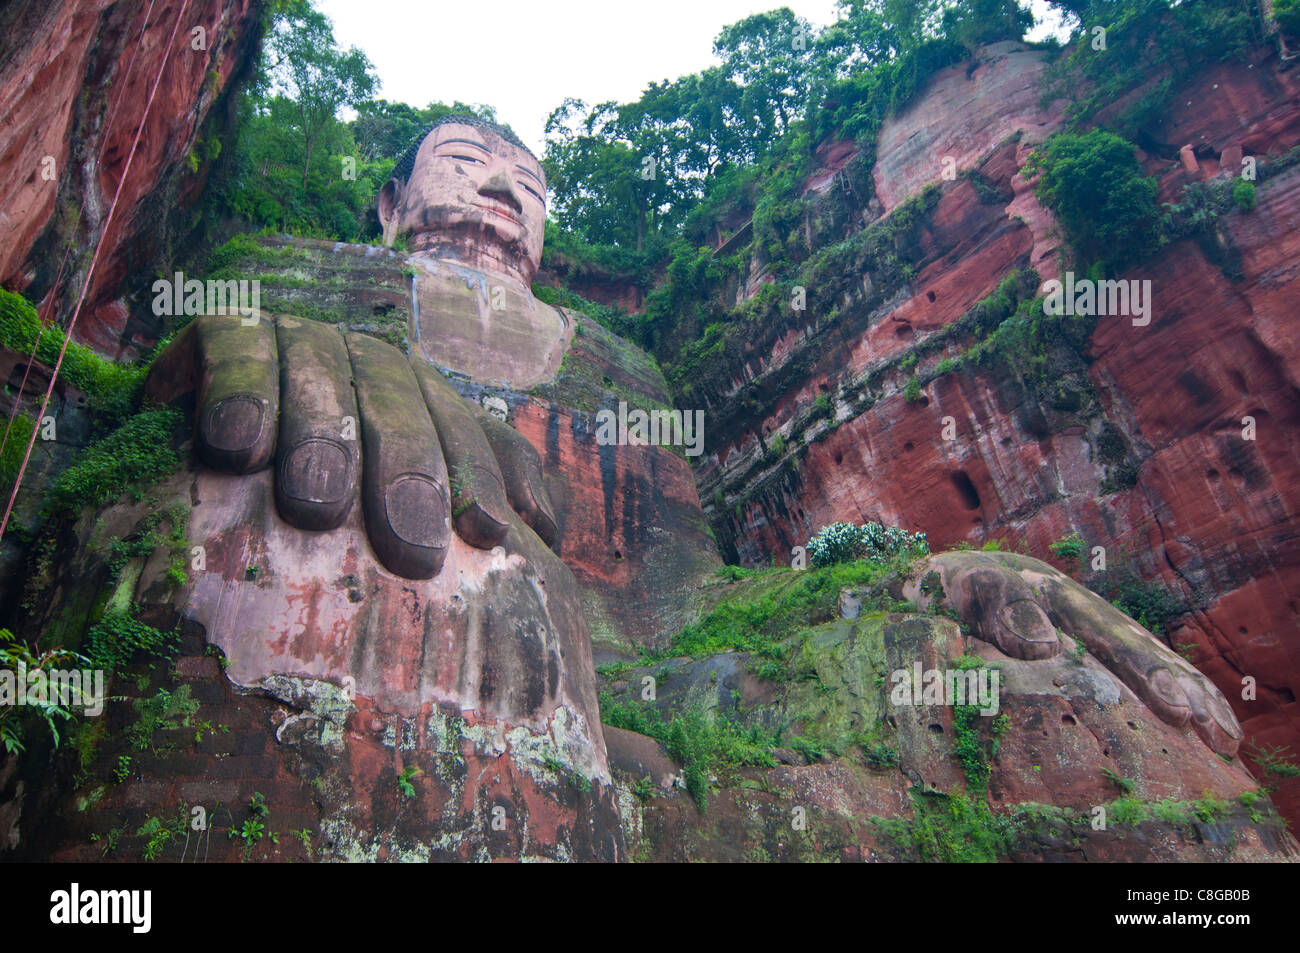 The giant Buddha of Leshan, UNESCO World Heritage Site, Sichuan, Tibet, China - Stock Image